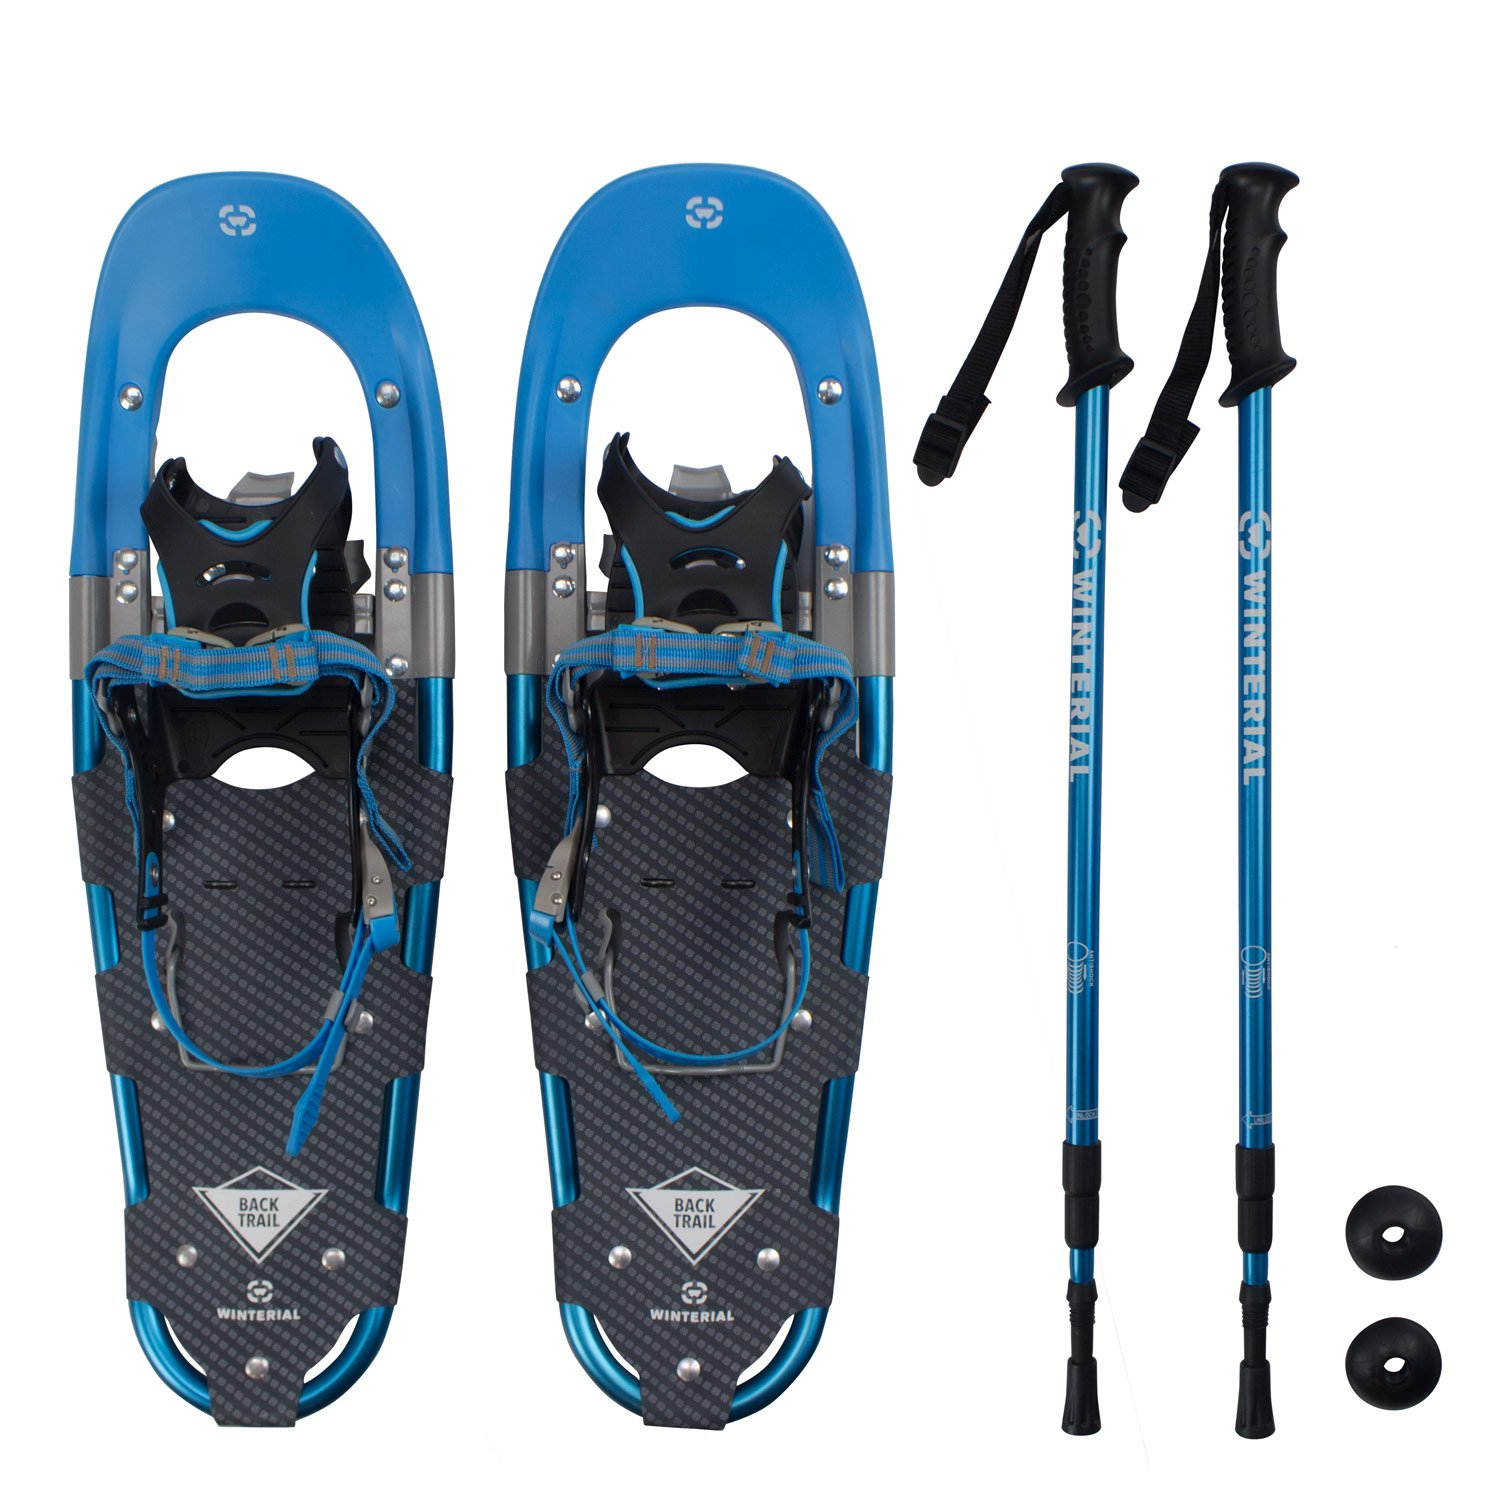 Winterial Back Trail Snowshoes/Recreational Snowshoes/Snowshoeing/Snowshoe/Backcountry Snowshoeing/Rolling Terrain Snowshoes/POLES INCLUDED!